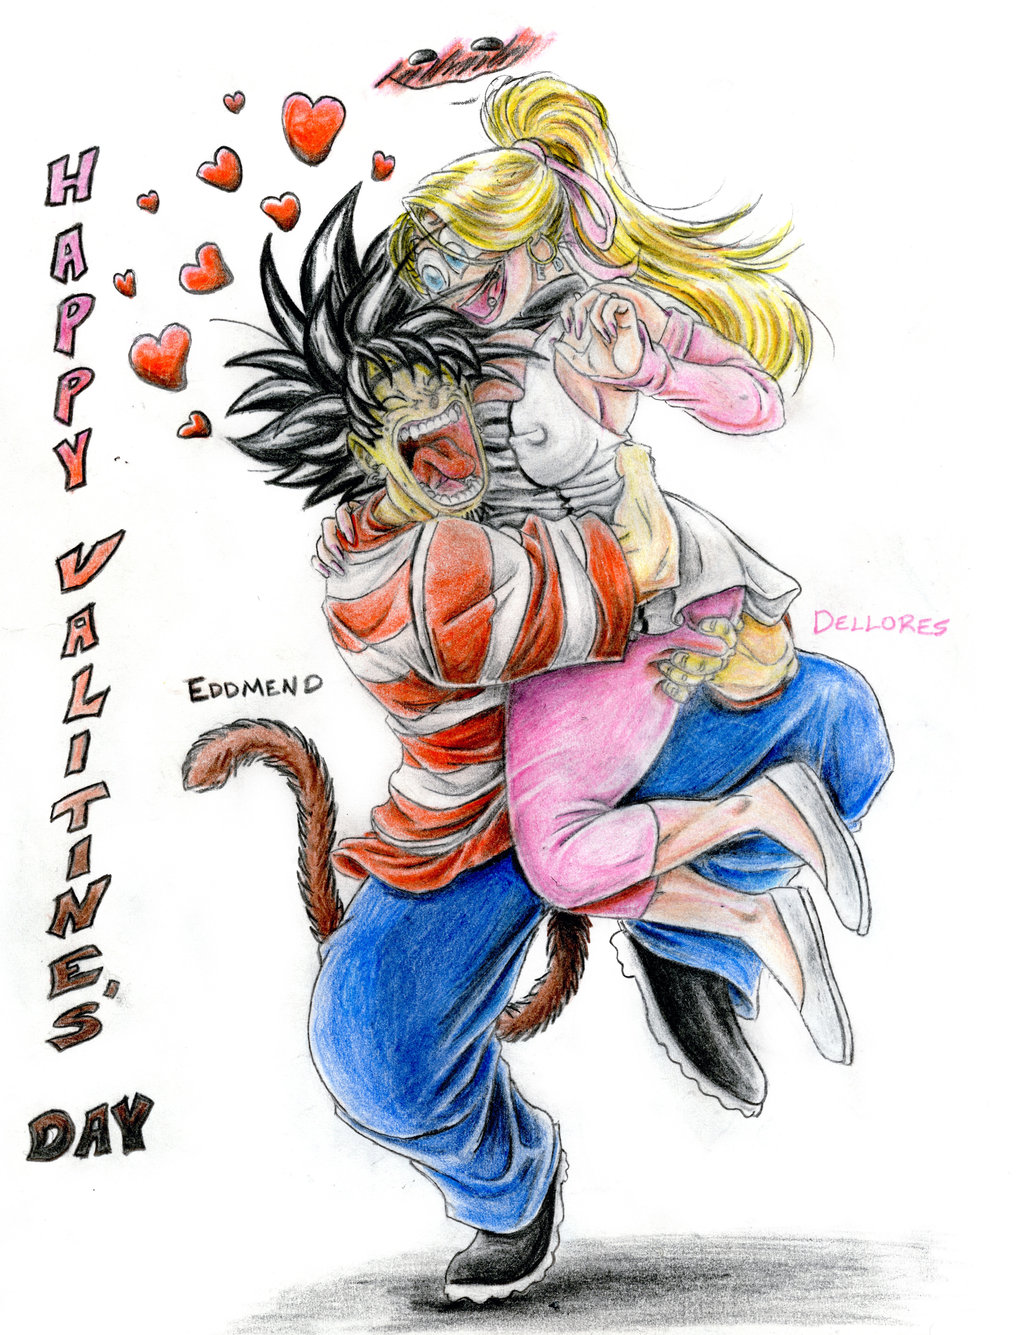 Ed and Dee Dee: Happy Valentines Day